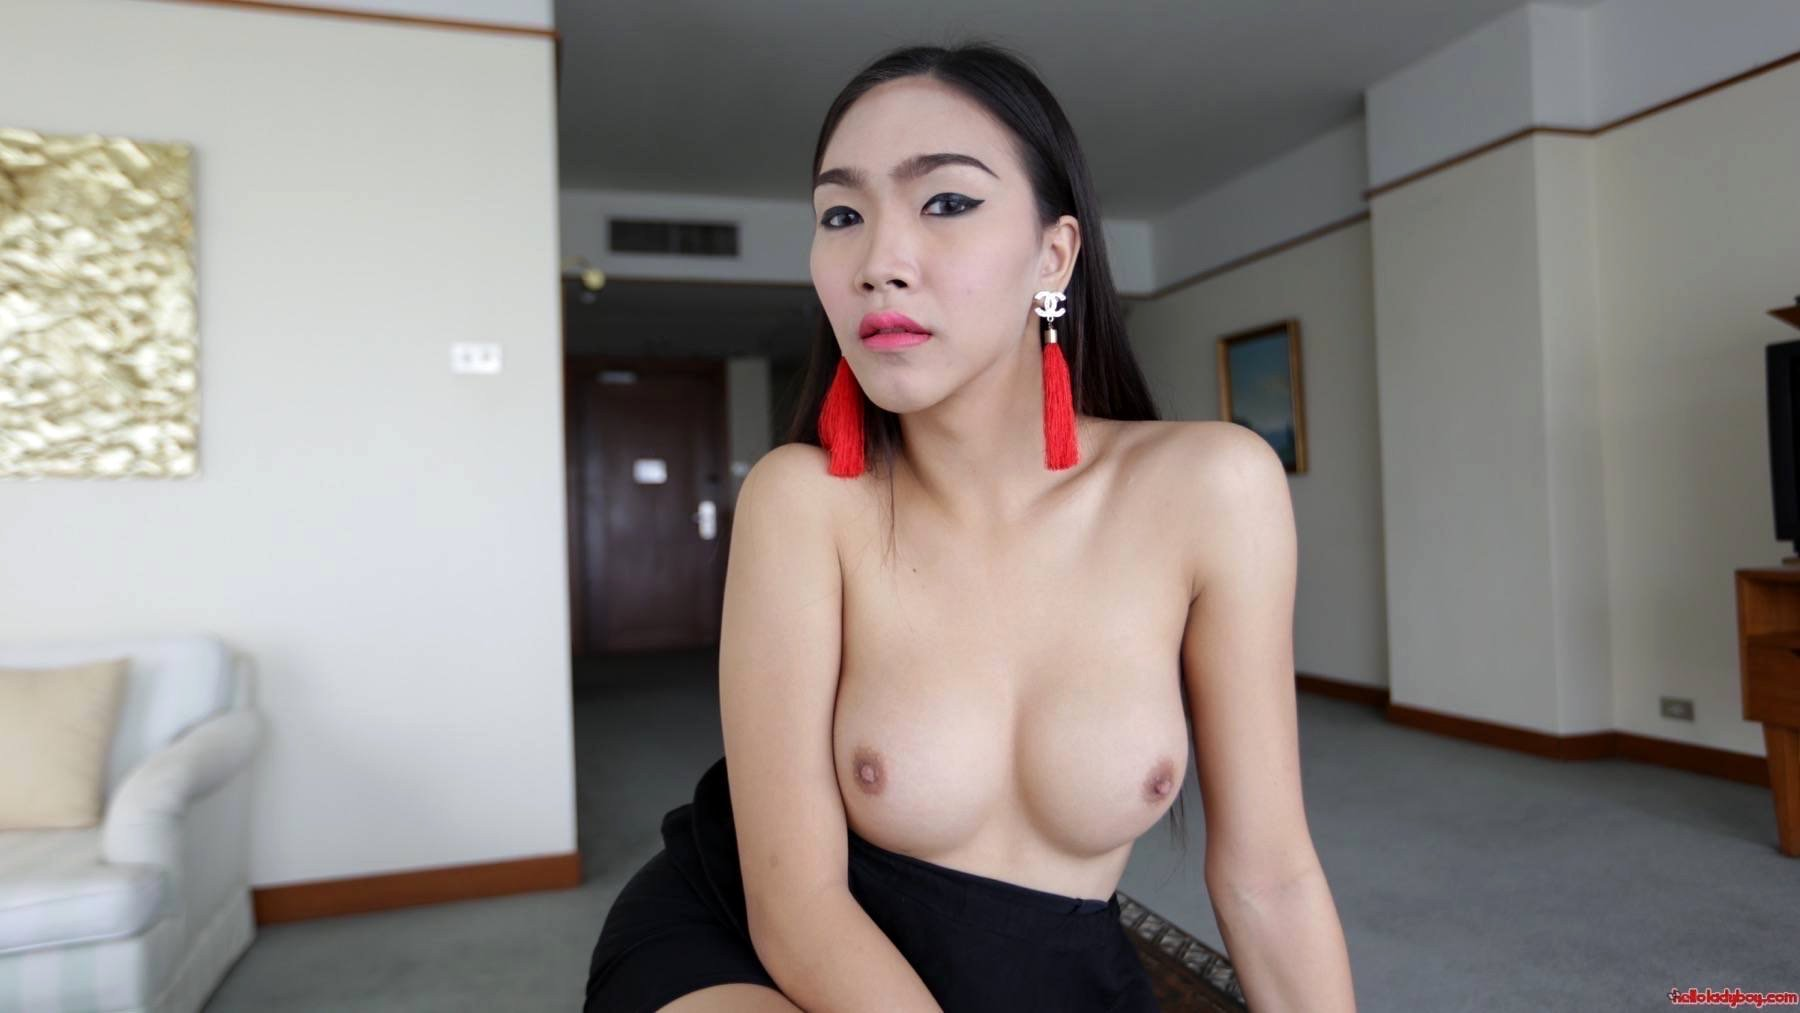 21 Year Old Busty Asian TGirl With Massive Penis Gets A Facial